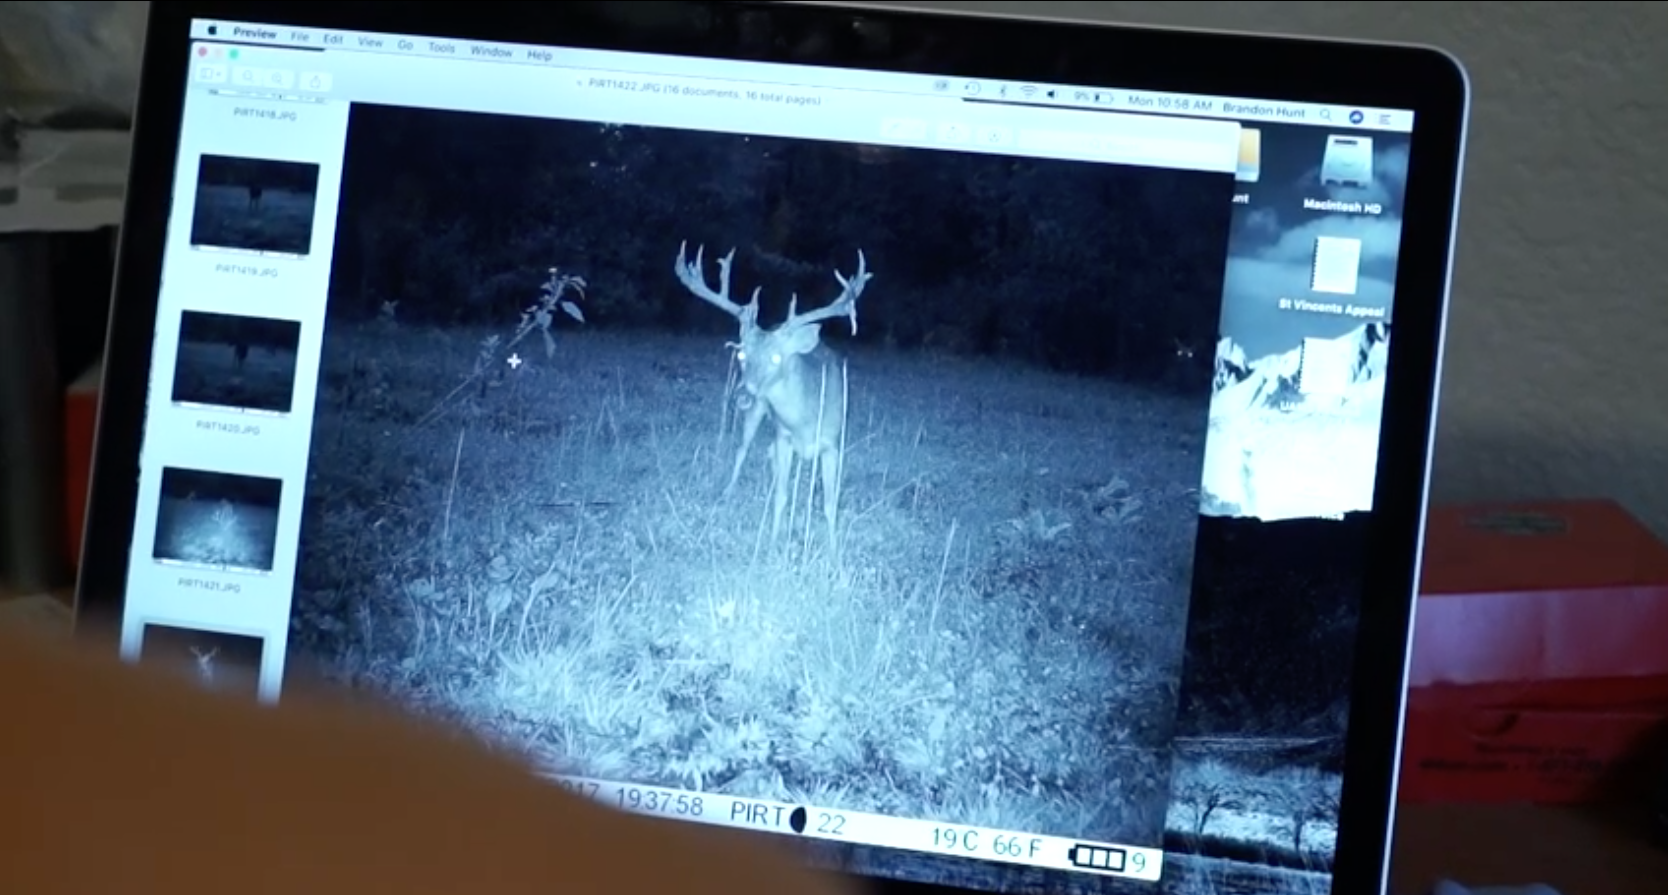 big-arkansas-stag-caught-on-camera-in-daylight-on-struttinbuck-streaming-on-waypoint-shot-6